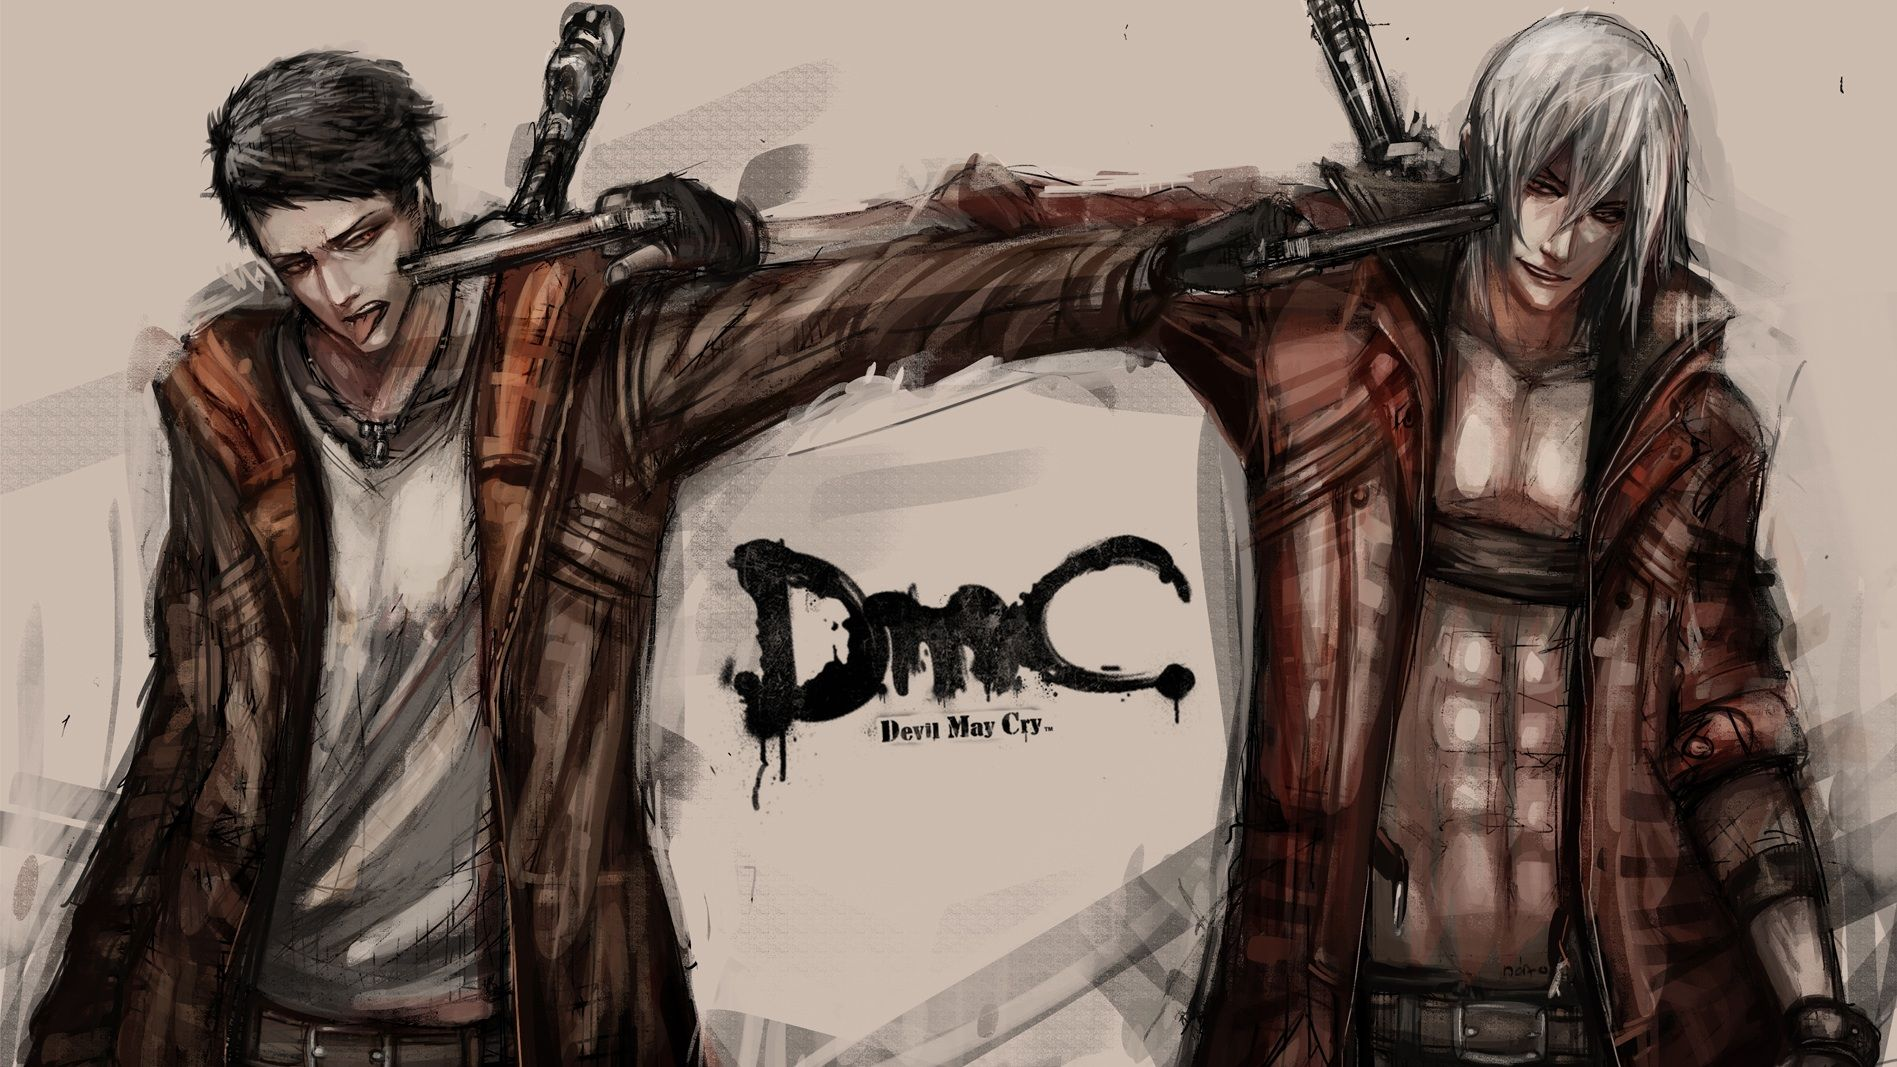 Devil may cry anime funny google search devil may cry devil may cry anime funny google search voltagebd Image collections